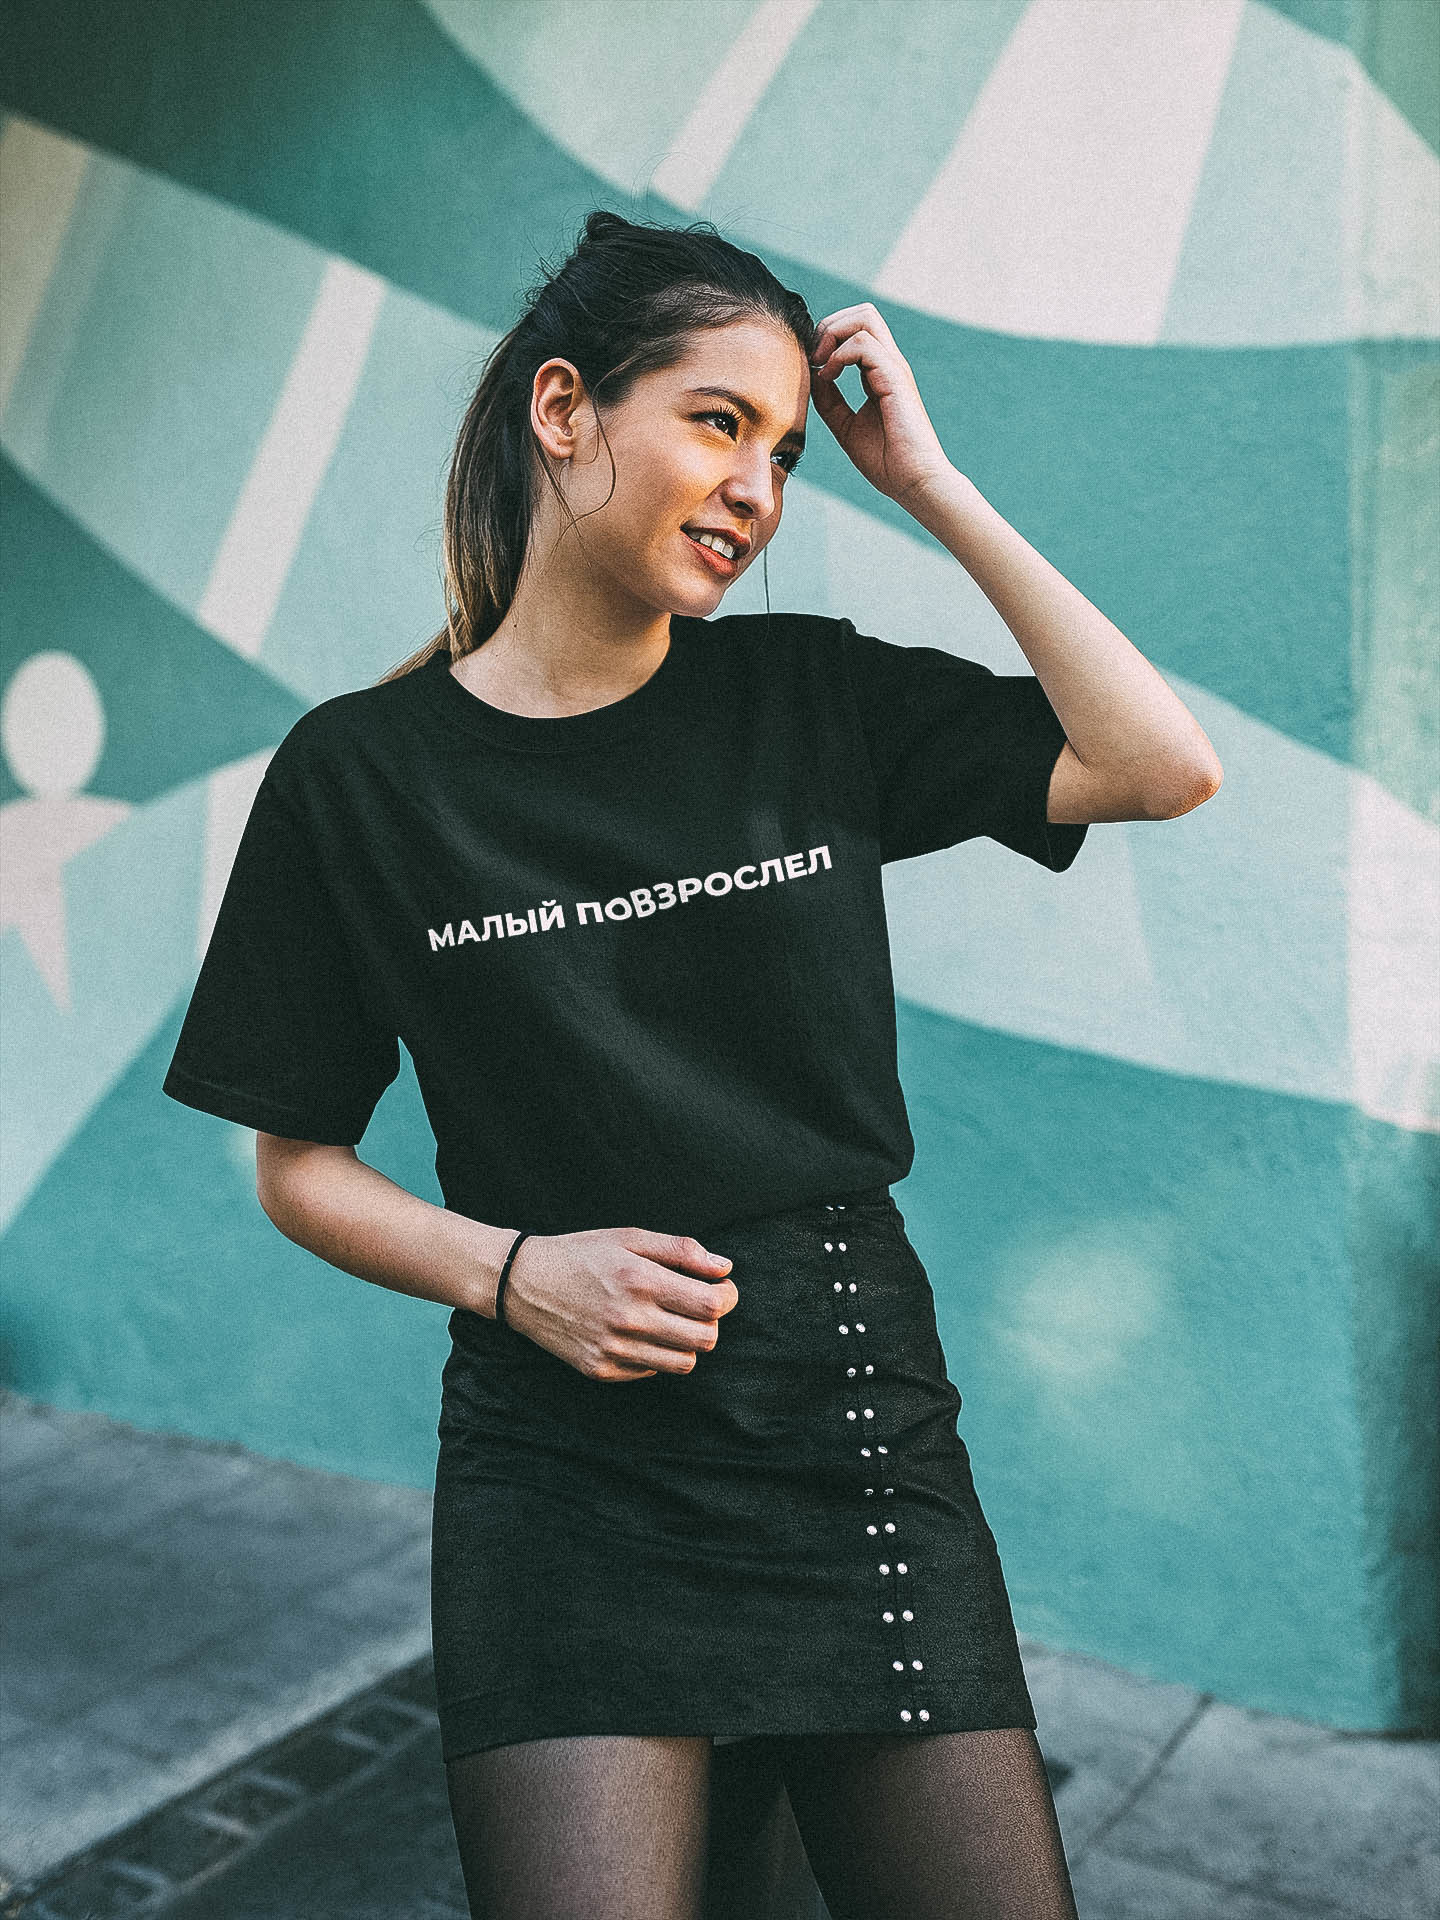 Fashion Summer T Shirt Women Tops Russian Letter Print Black White Funny T Shirts Female T-shirt With The Inscription